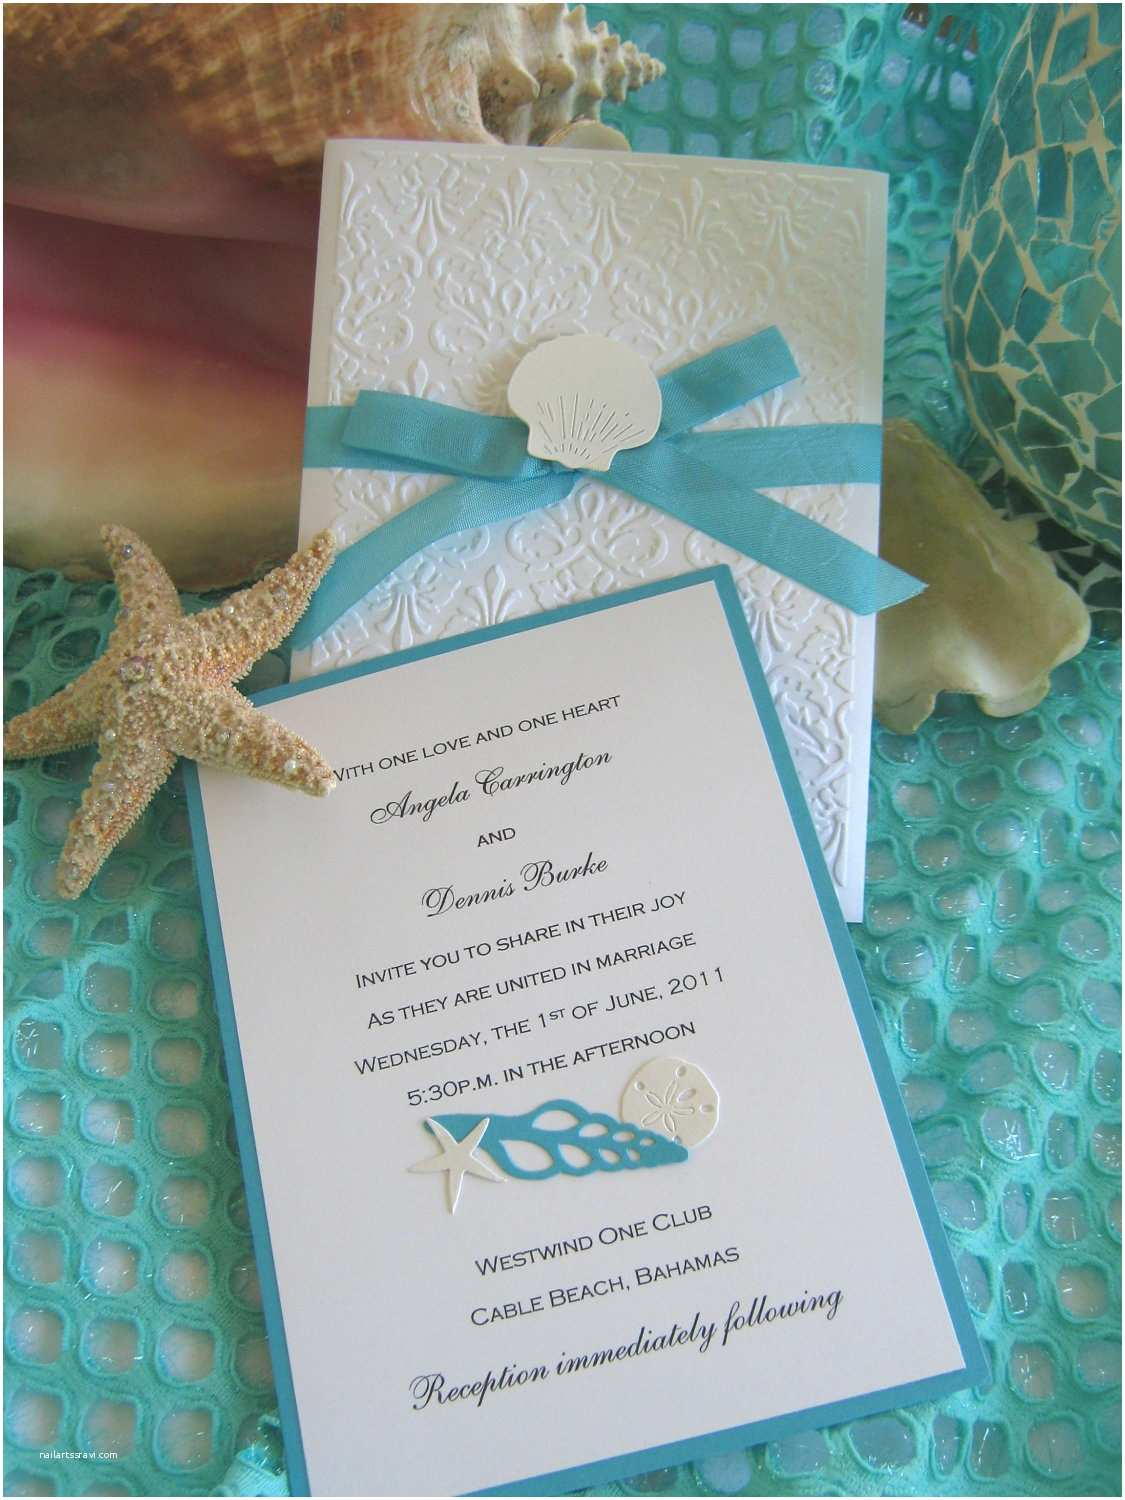 Formal Beach Wedding Invitations Seashell and Lace Beach Wedding Invitation